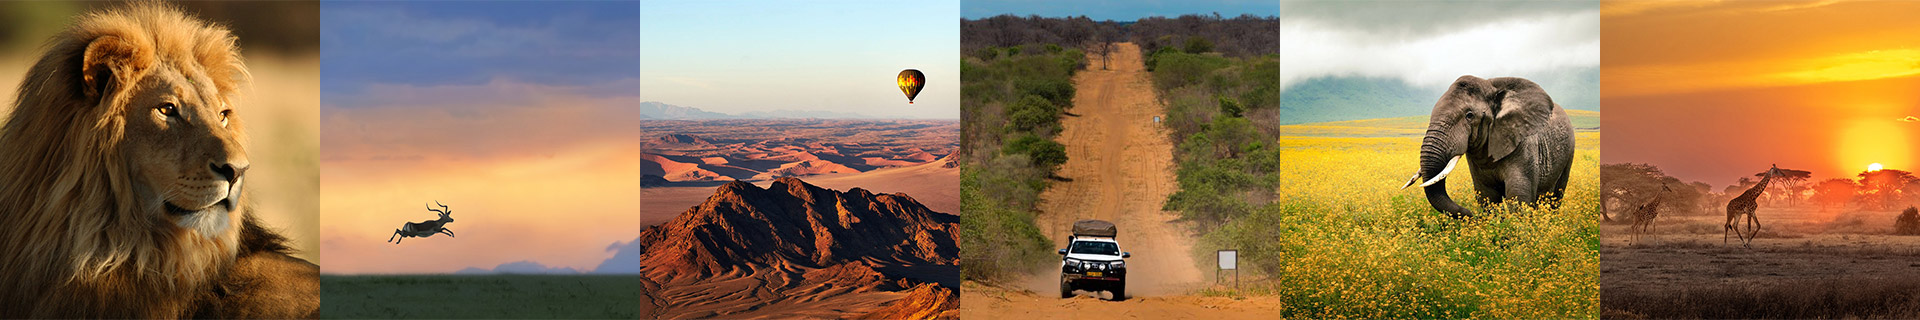 Explore-Africa-Group-Explore-More-footer